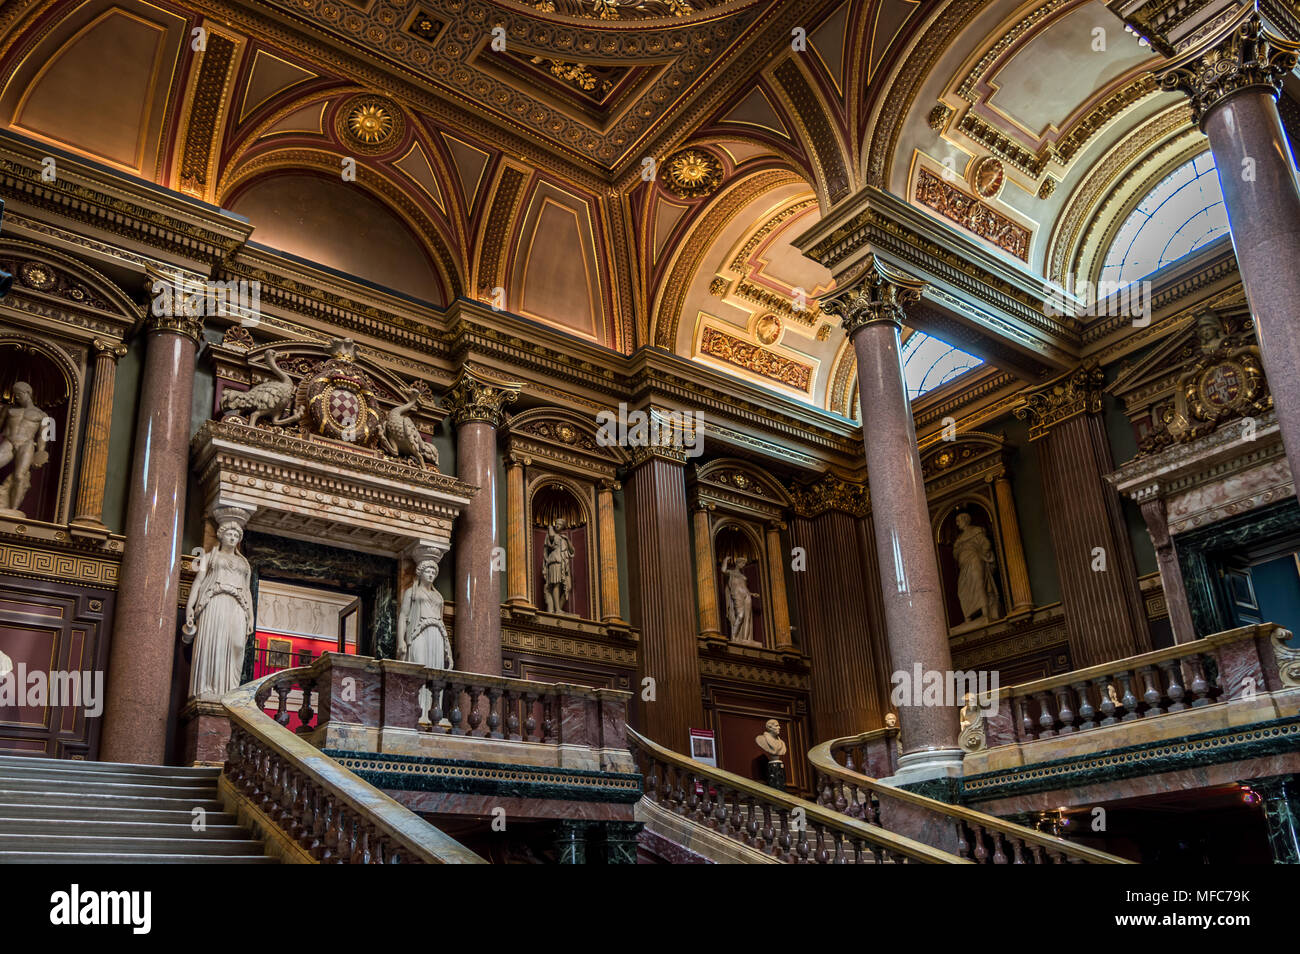 CAMBRIDGE, ENGLAND - April 23: Interior of the FitzWilliam Museum for antiquities and fine arts at Cambridge, England - Stock Image